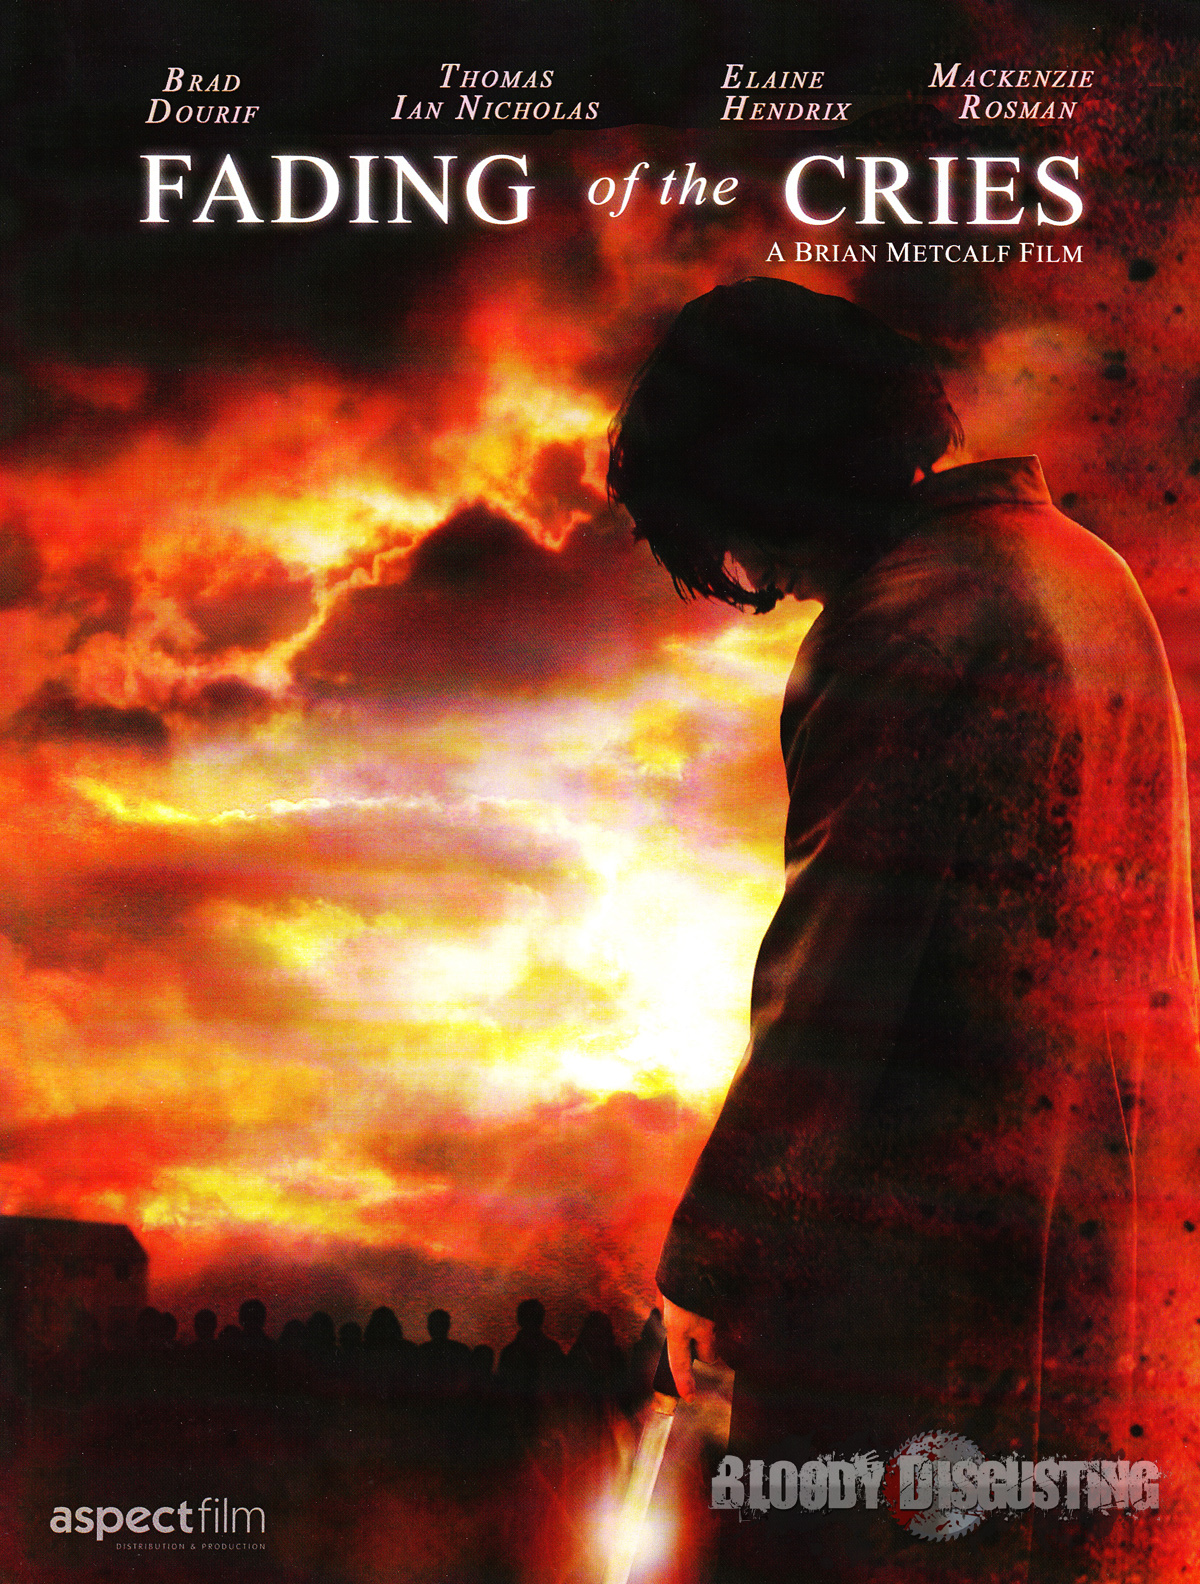 Biographie de Mackenzie Rosman, Fading of the Cries